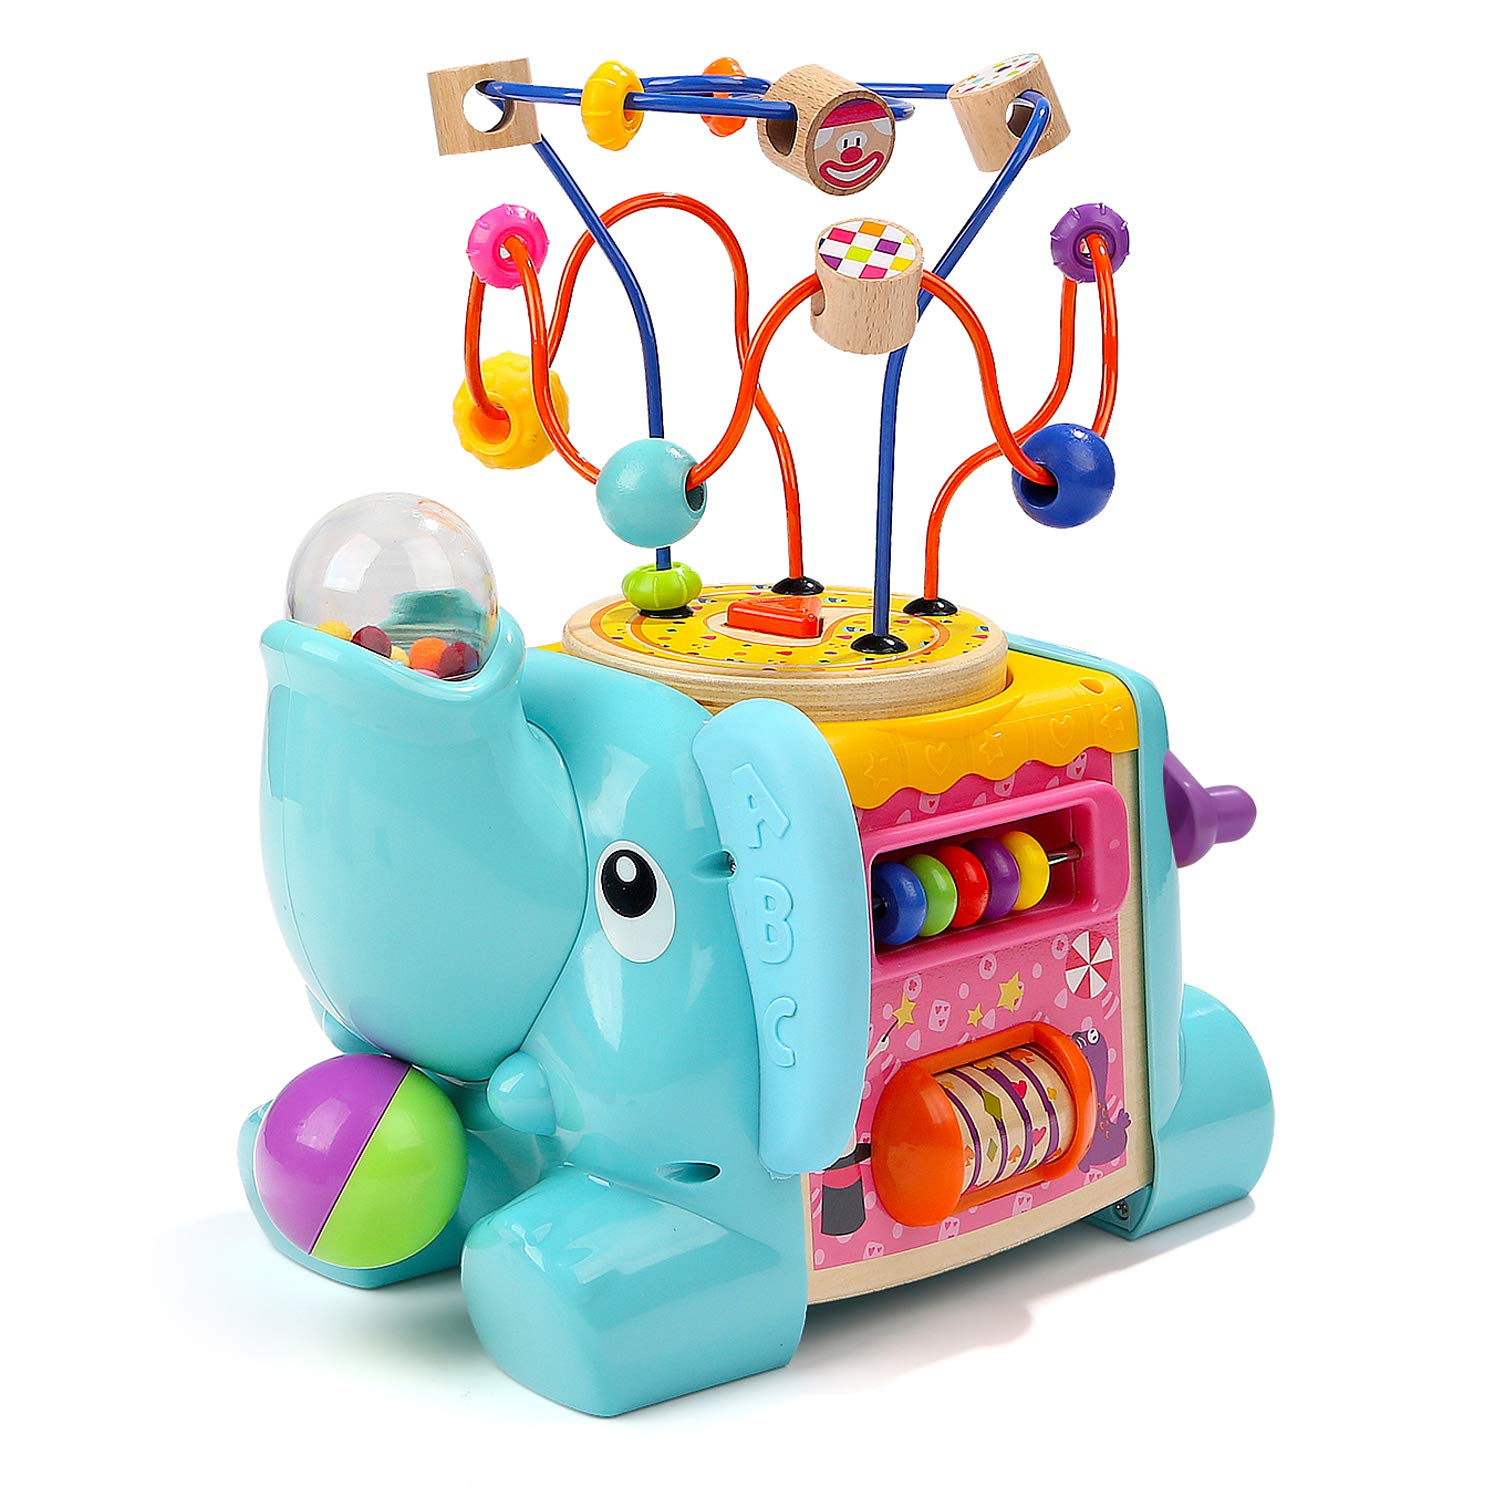 Top 40 Best Toys & Gifts Ideas for 1 Year Old Boys & Girls 24